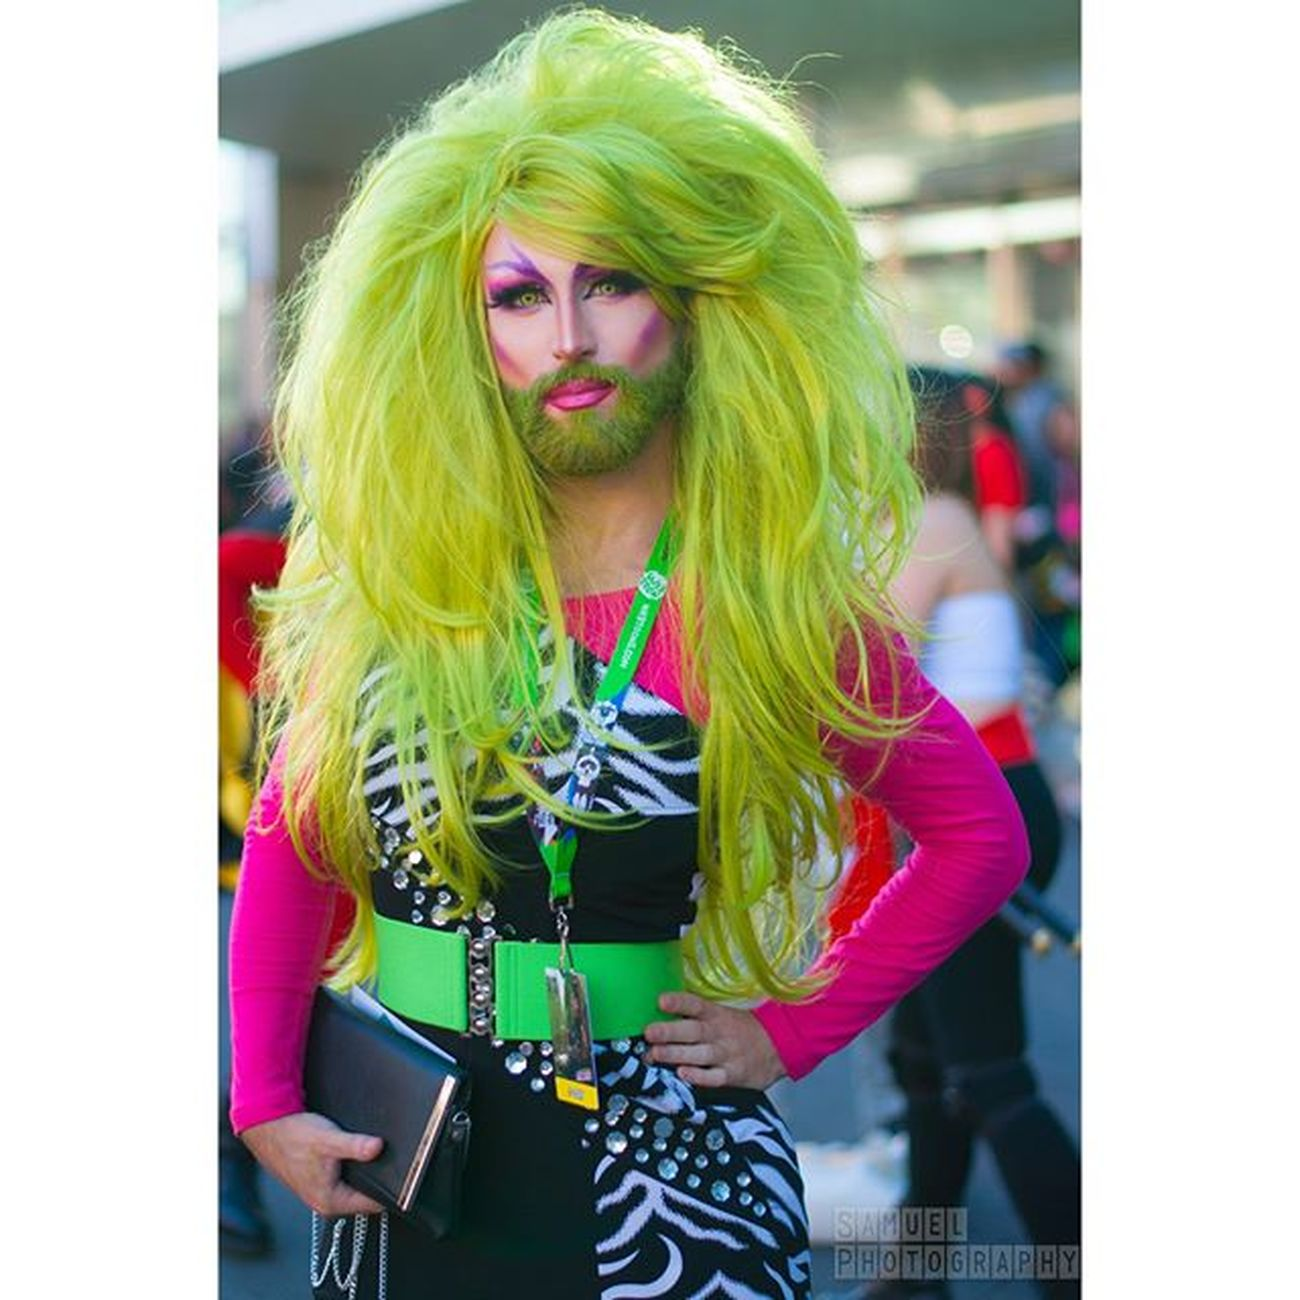 Colorful FAbLoUs Beardcolor Greenhair Cosplayphotogtraphy Cosplay Newyorkphotography NYCC NYCC2015 Nycc15 Comiccon Newyorkcomiccon